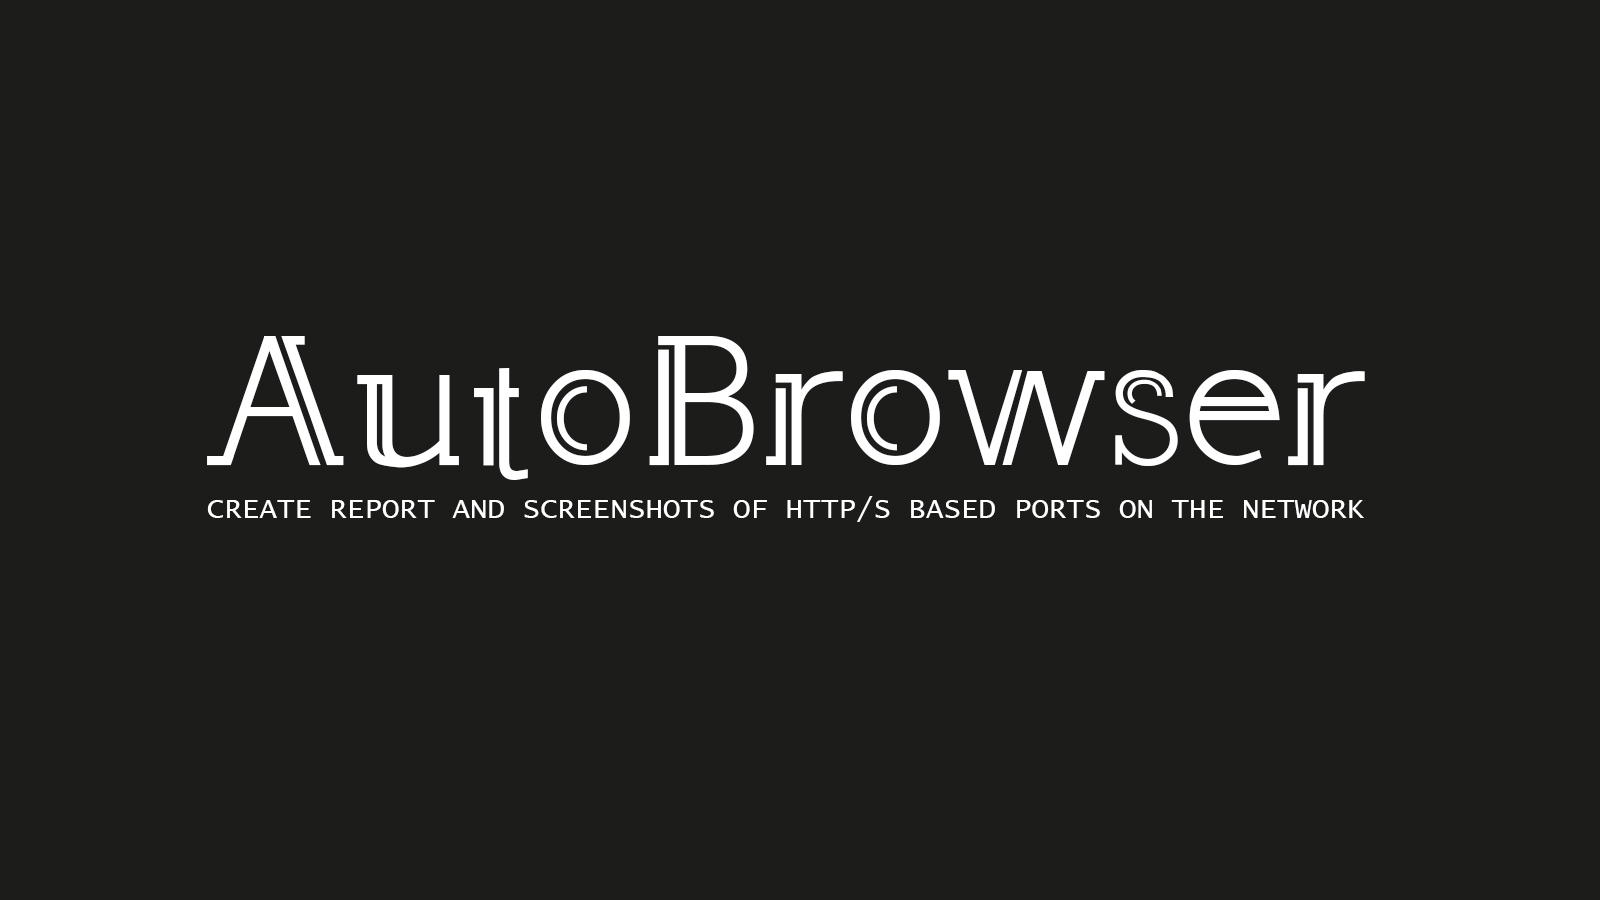 AutoBrowser - Create Report and Screenshots of HTTP/S Based Ports on the Network